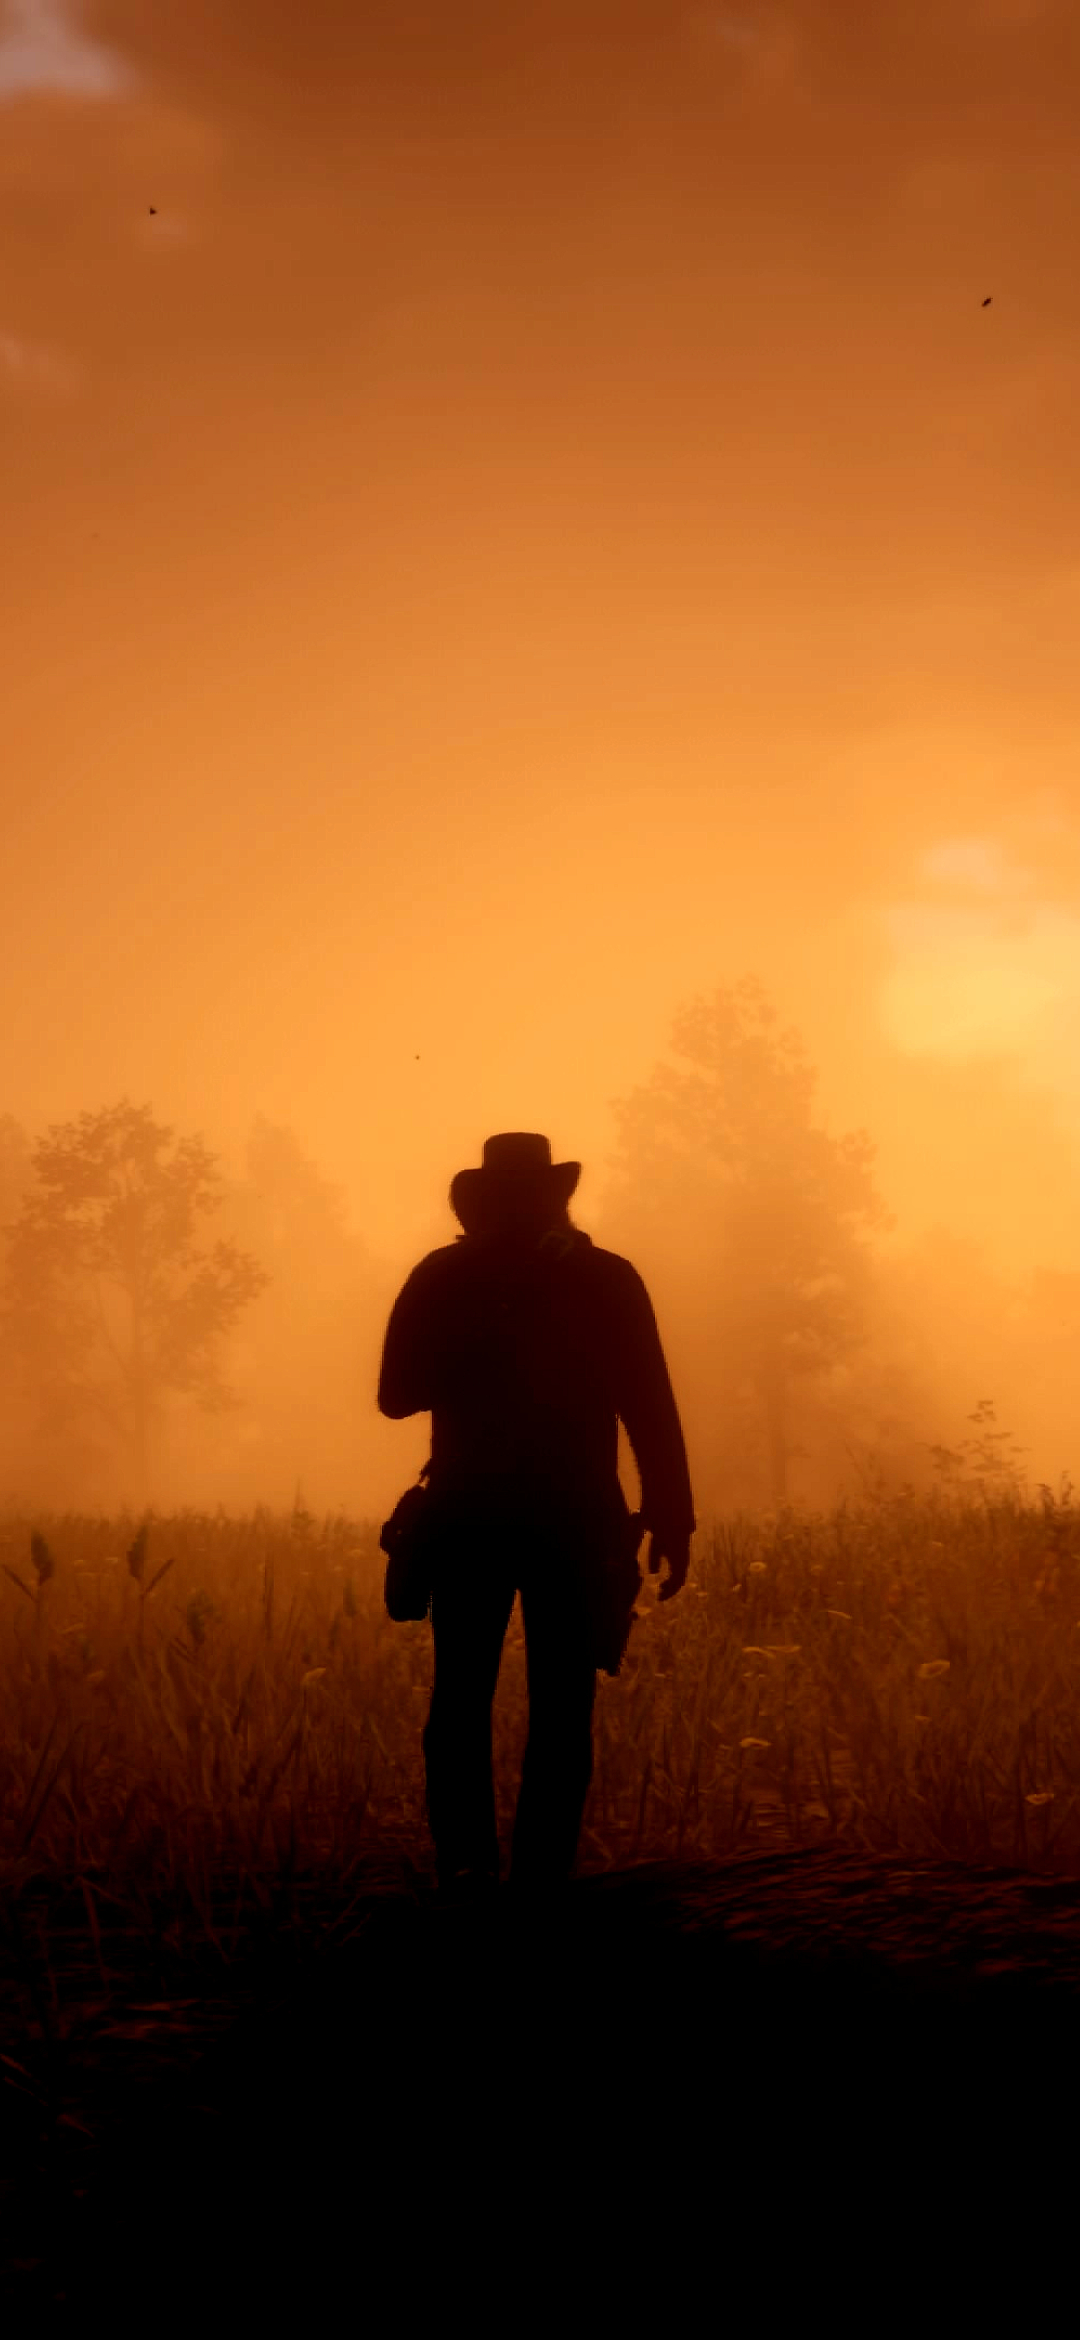 1080x2340 Game Red Dead Redemption 2 1080x2340 Resolution Wallpaper Hd Games 4k Wallpapers Images Photos And Background